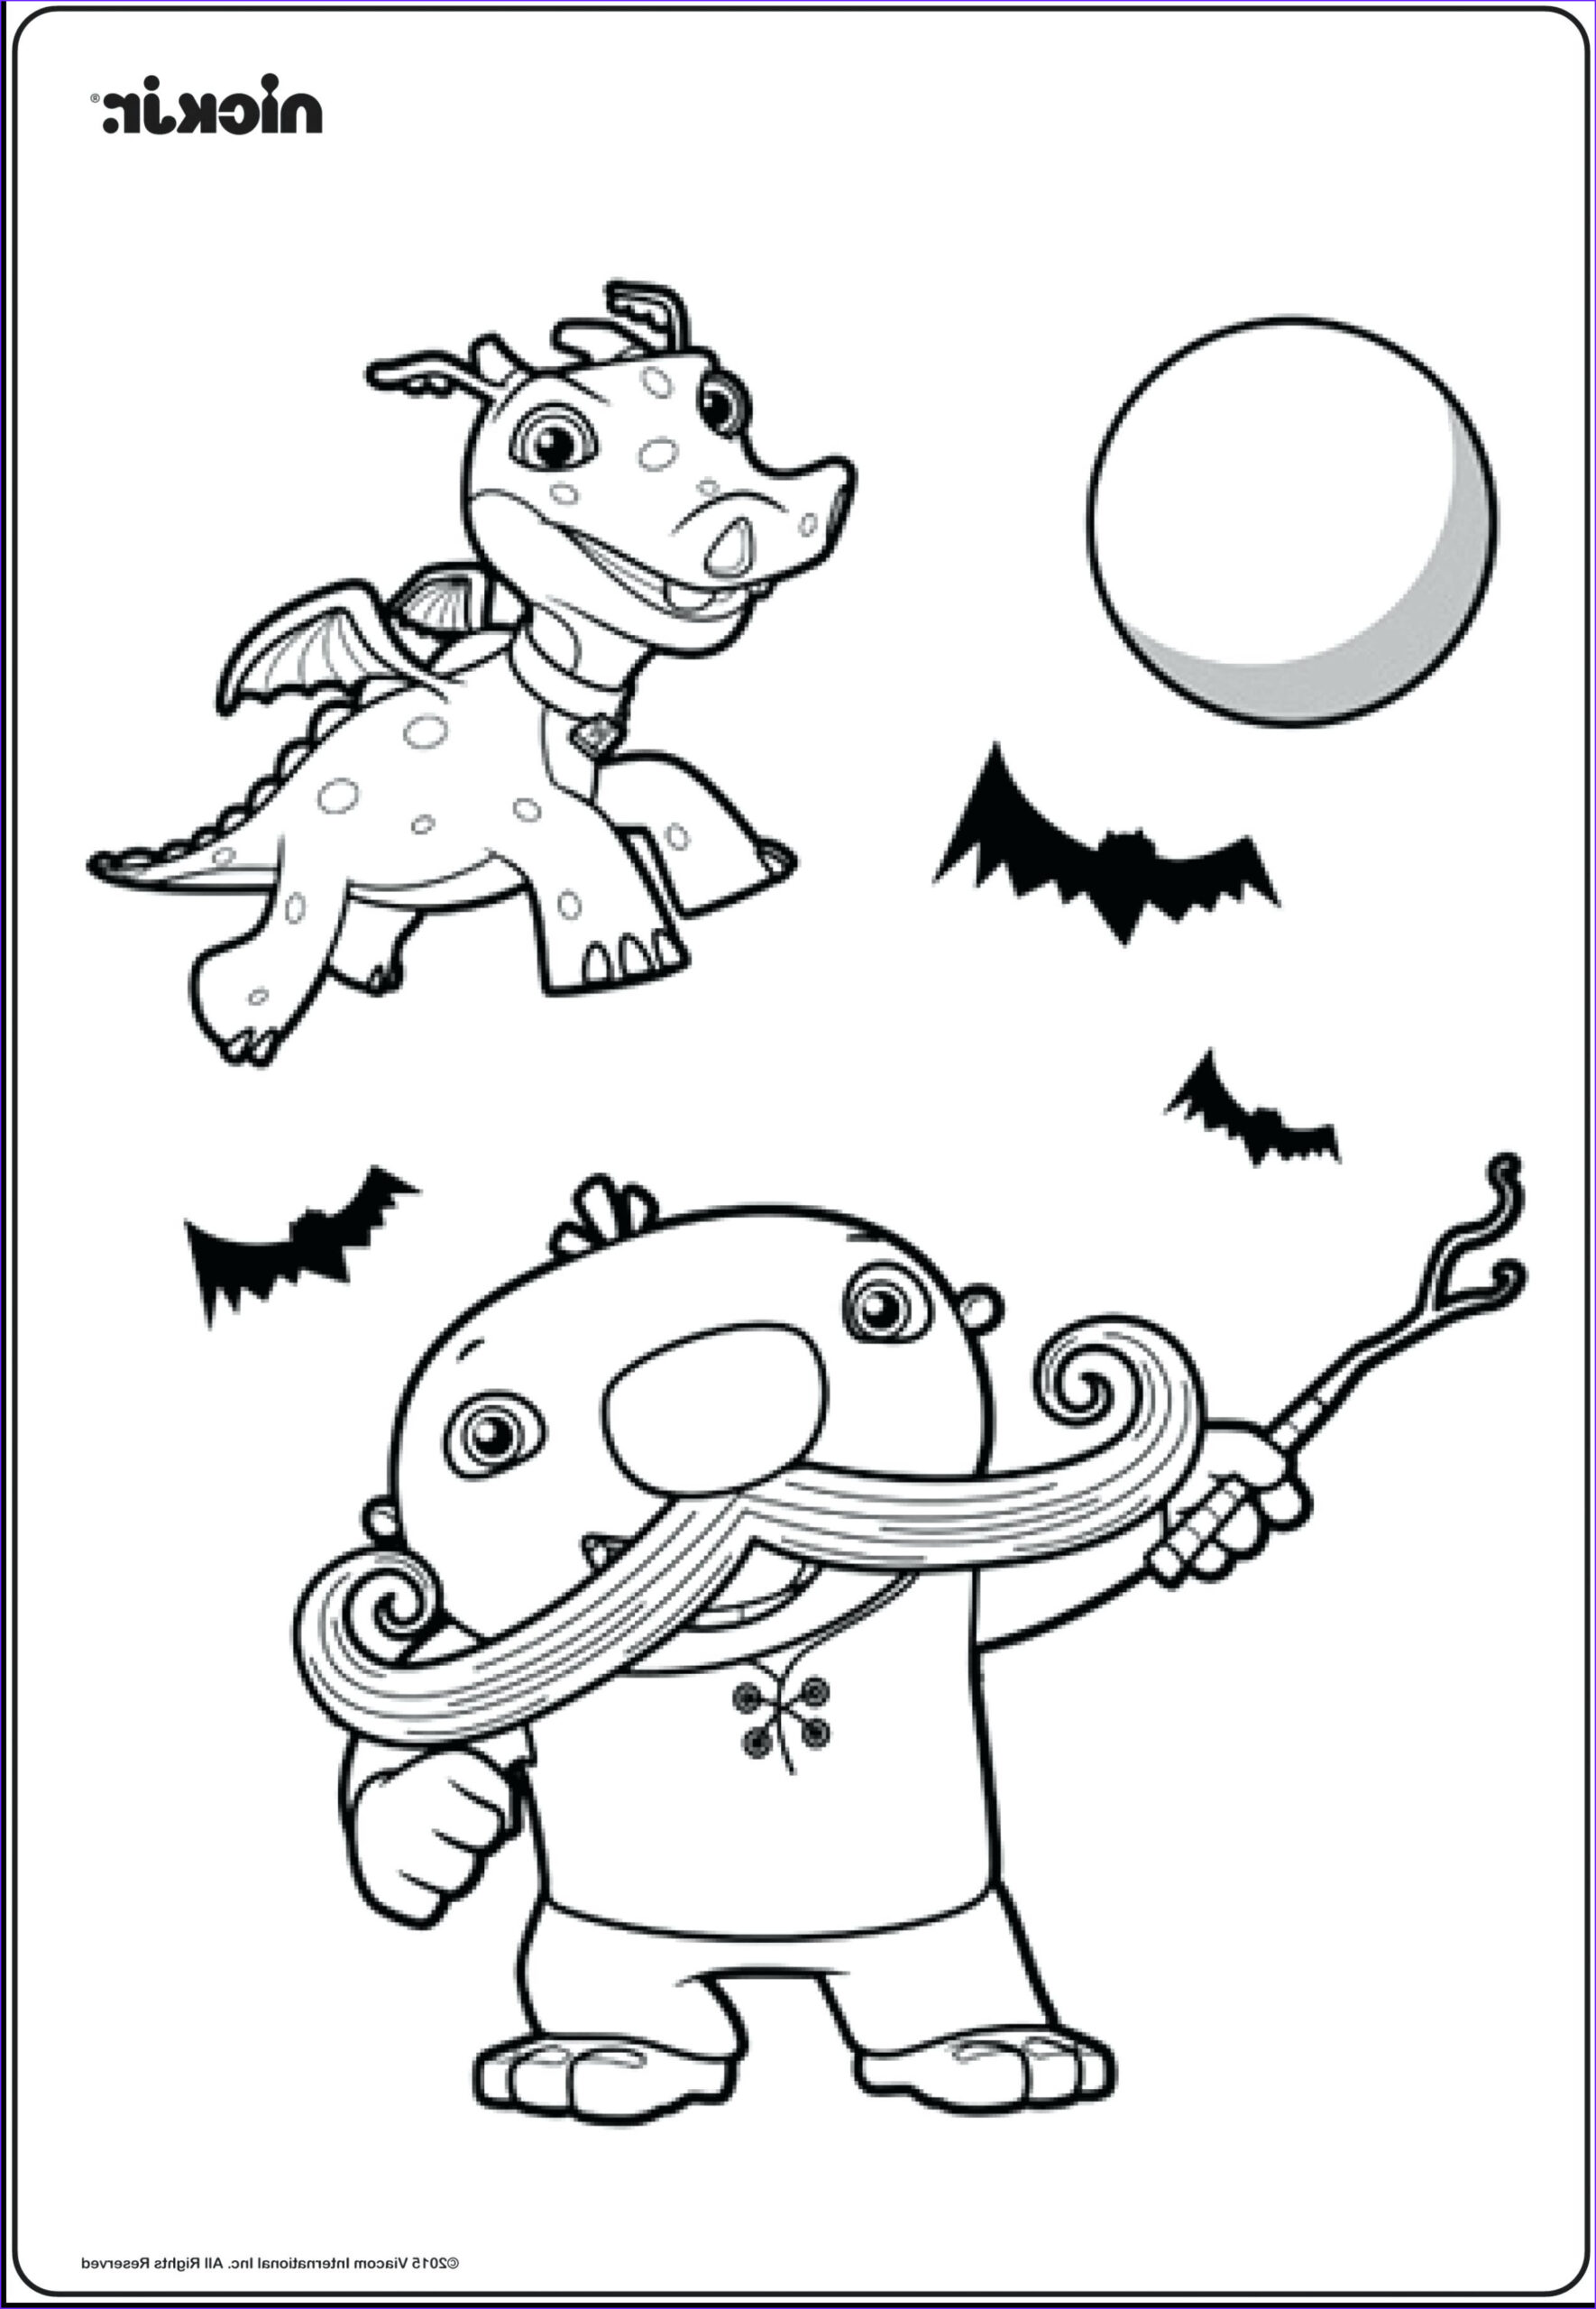 Nickelodeon Coloring Books Awesome Stock Nickalodeon Coloring Pages to Print